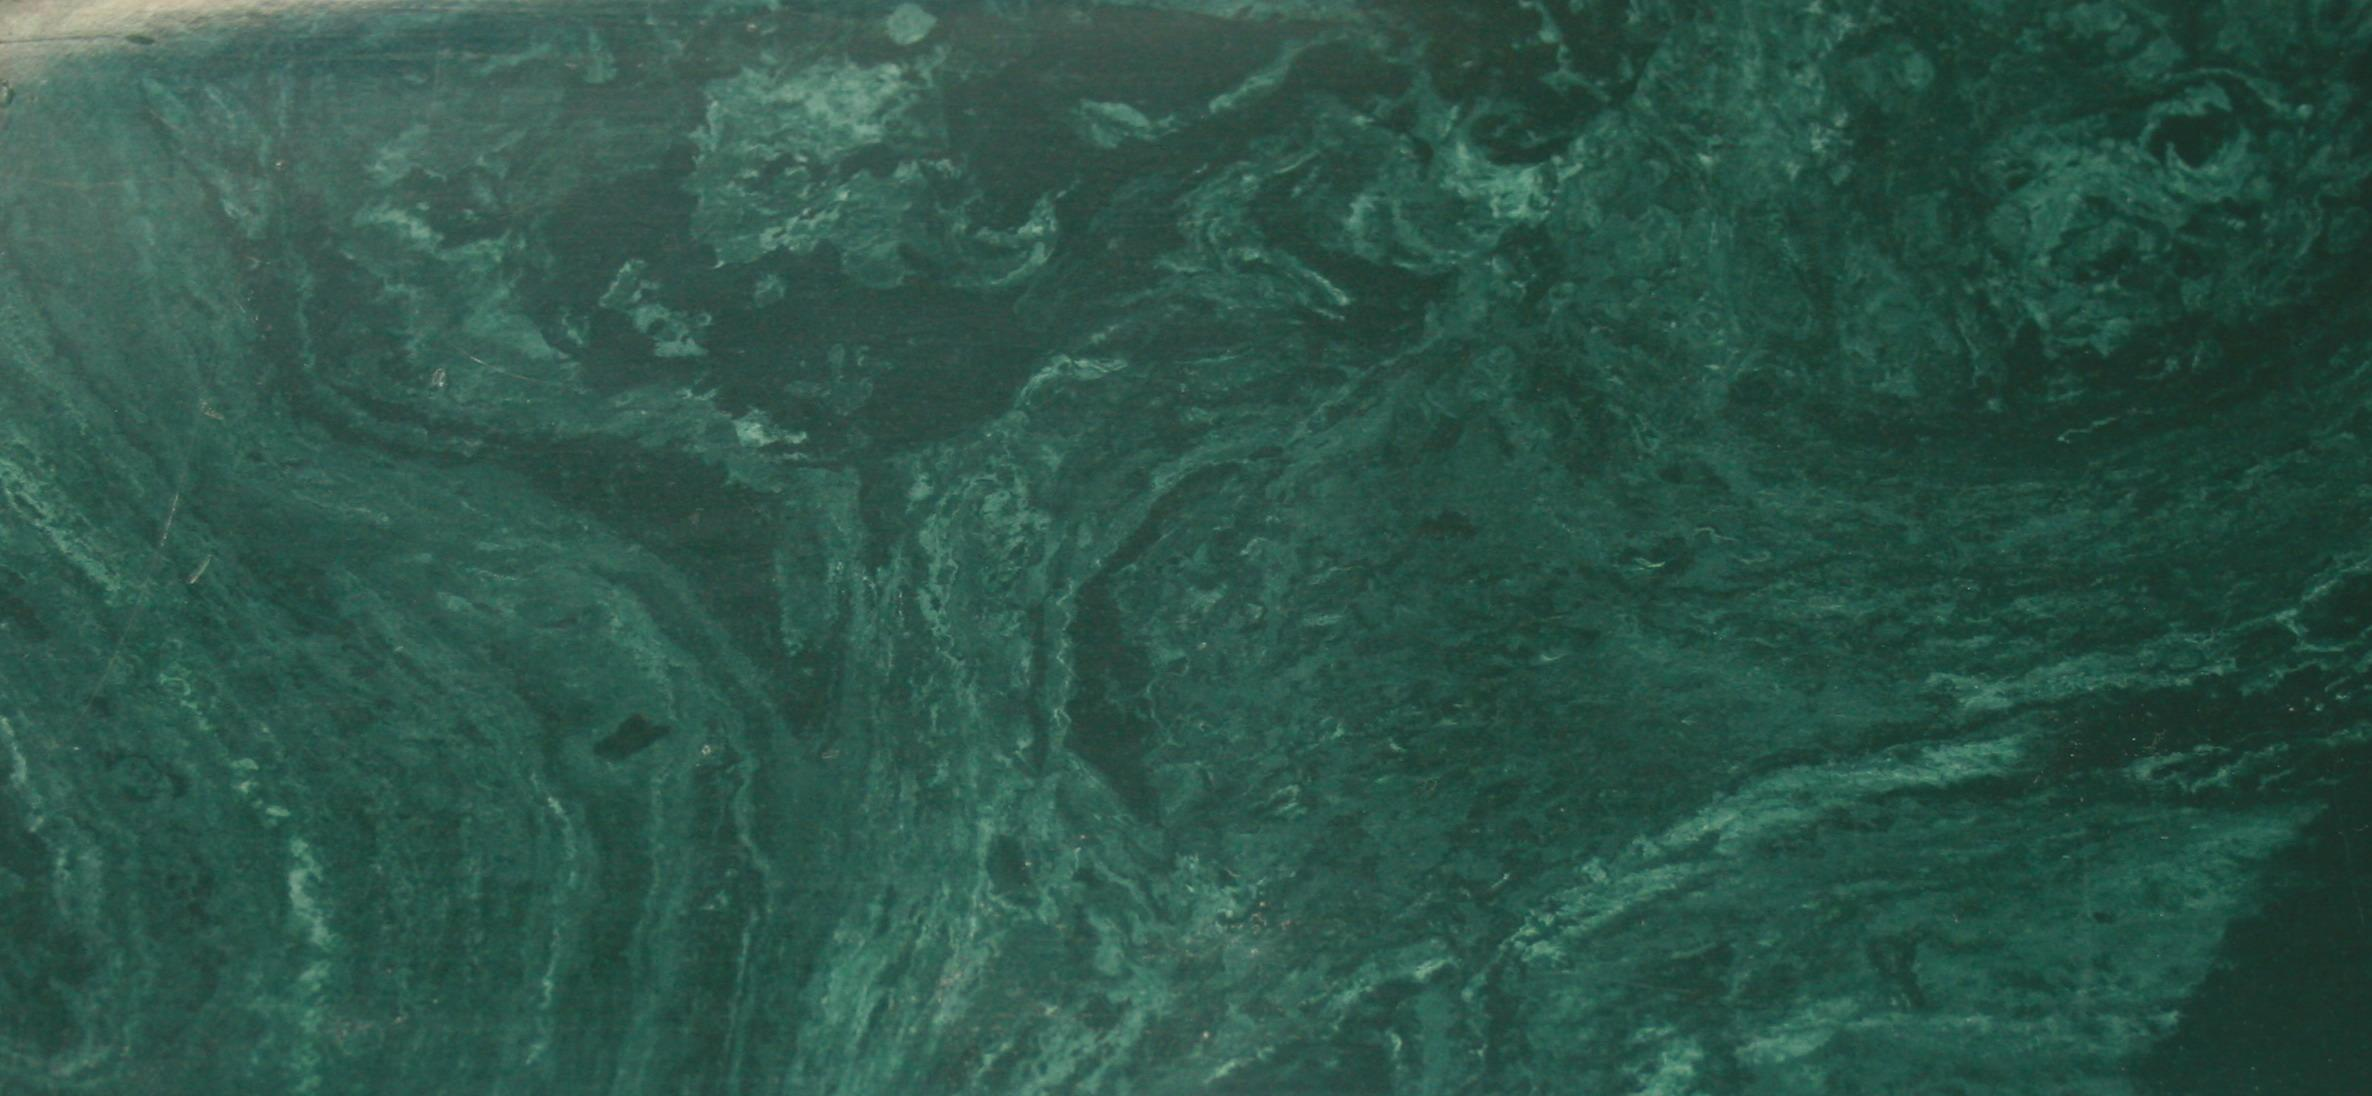 Verde Verge Marble Tiles, Slabs and Countertops - Green Marble from Other Country stones